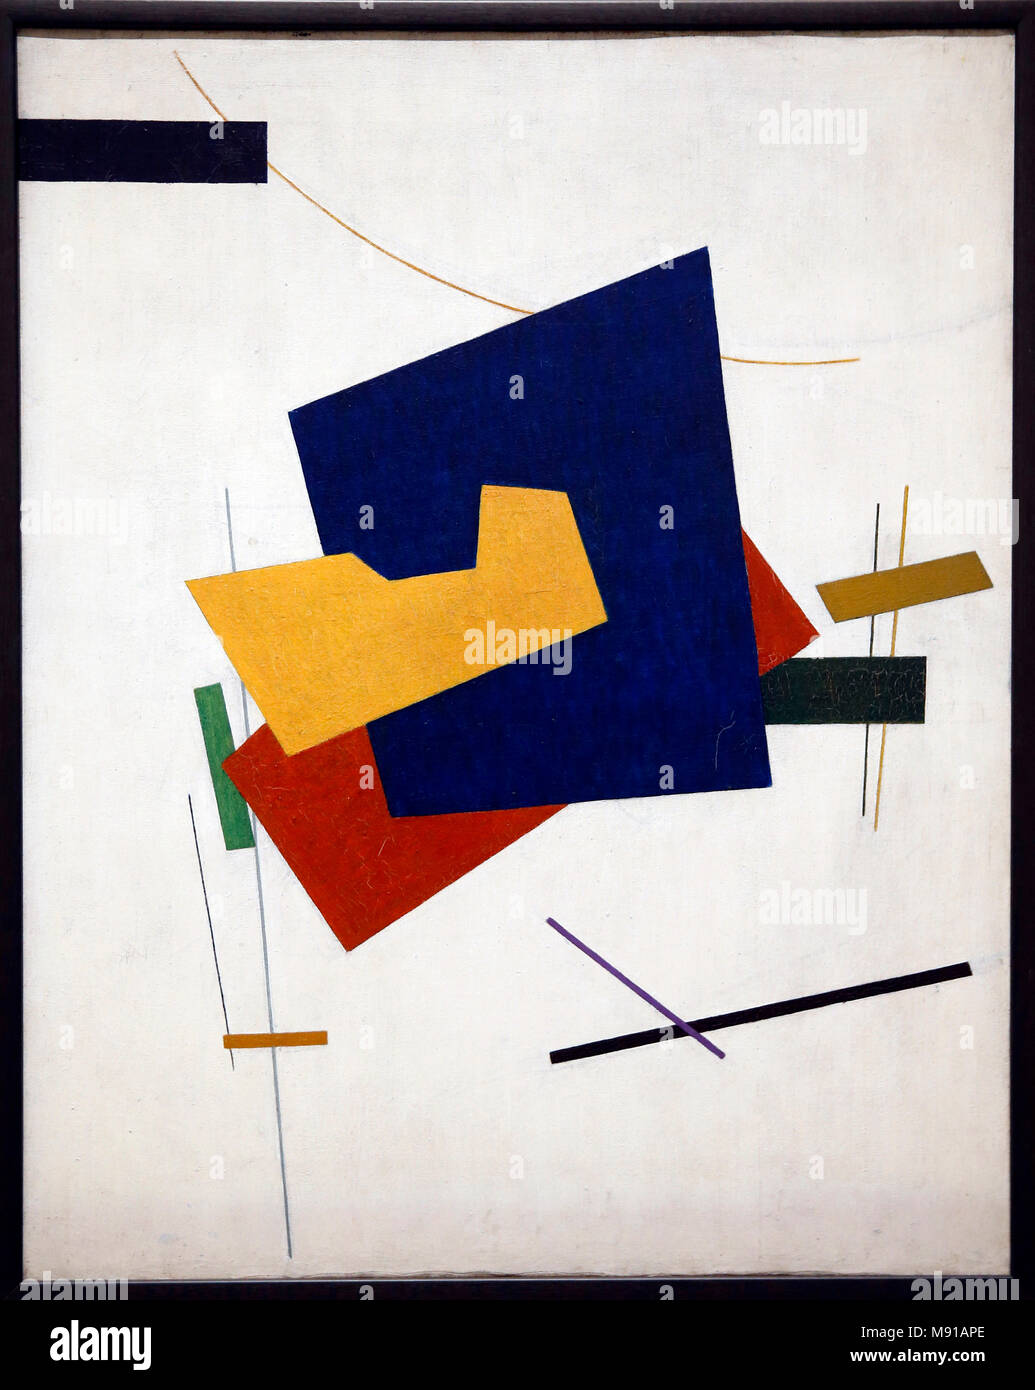 Ivan Klioune, Suprematism, 1916 (at the latest), oil on canvas, Tretiakov National gallery, Moskow. Shot while exhibited in Paris, France. - Stock Image